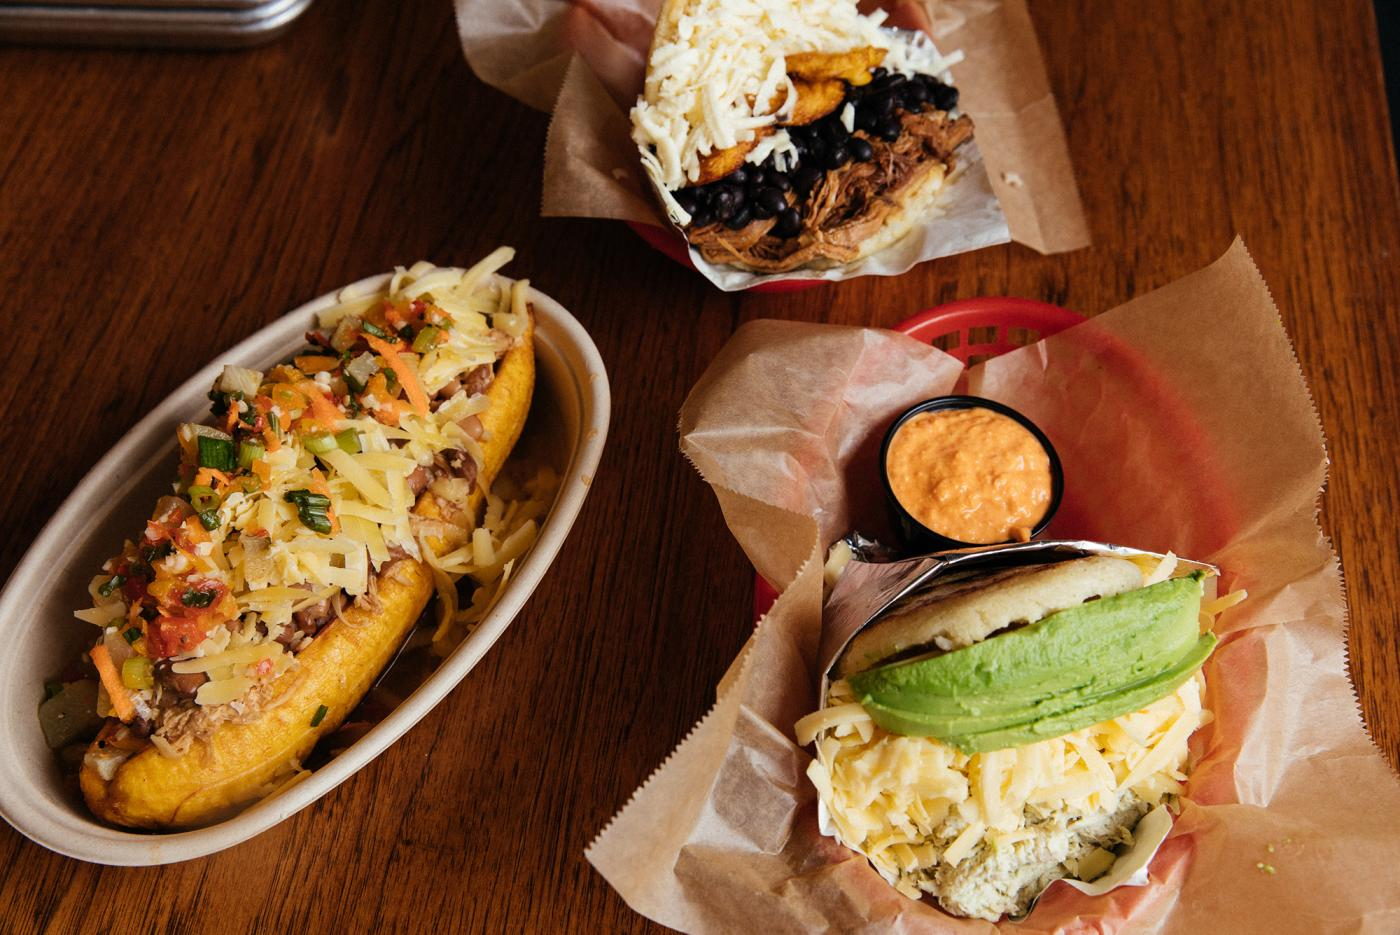 A stuffed plantain, pabellón arepa, and avocado chicken arepa with red pepper sauce at Sweet Pepper Venezuelan Food Bar. Photo: Sandy Noto for WTTW